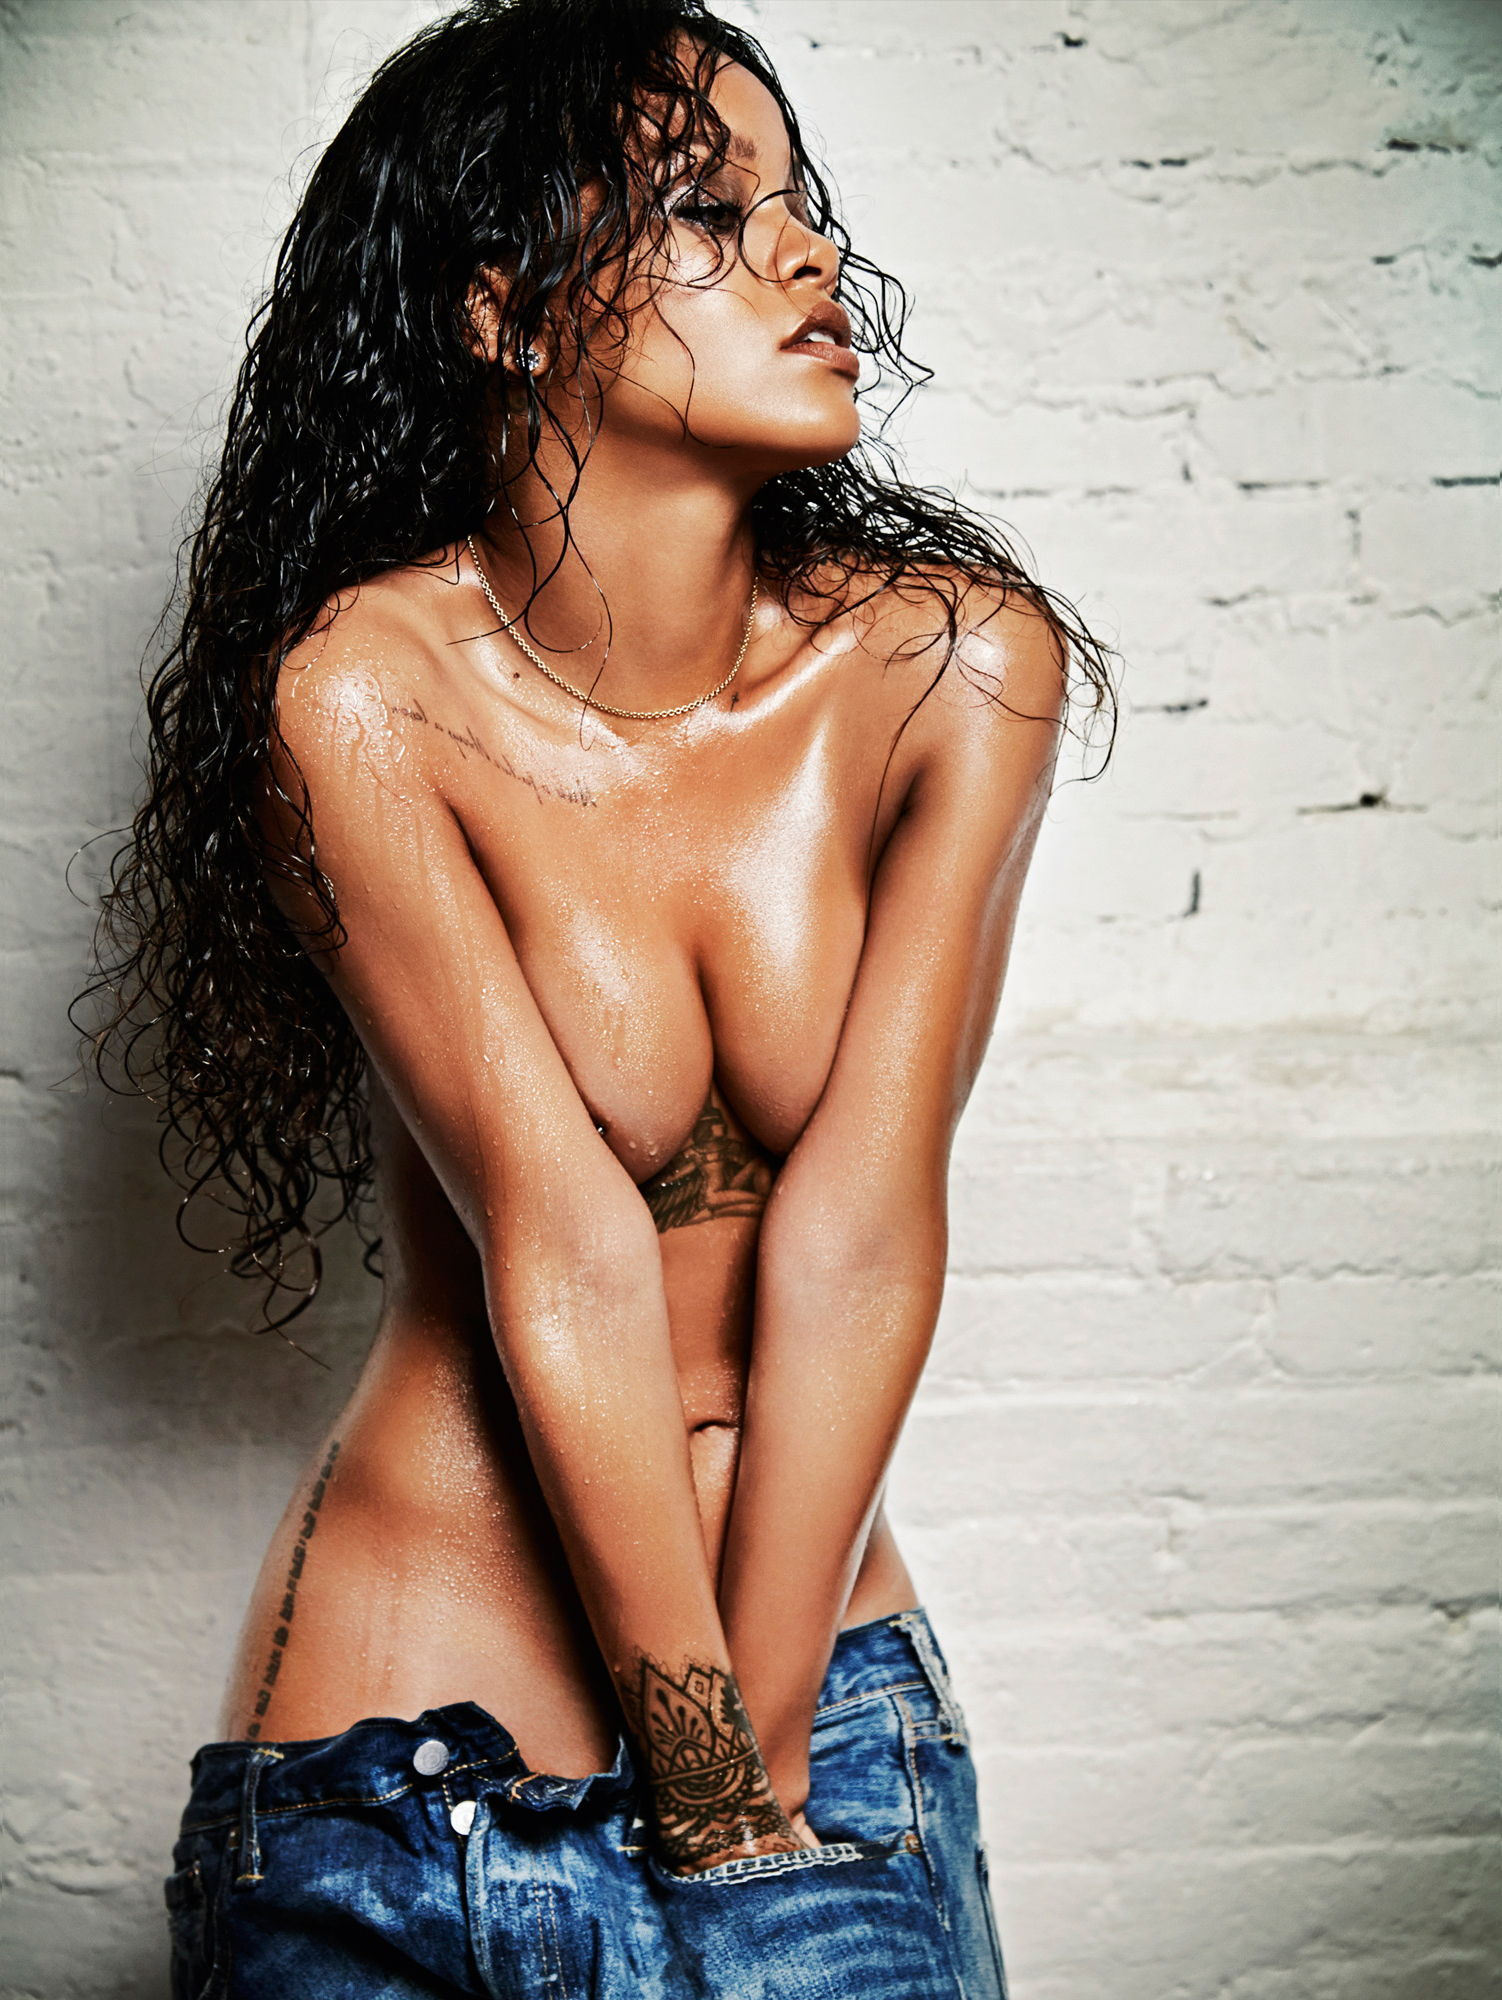 Free nude celebrity pictures sexy rihanna, celebrity goes naked, hot bare naked ass nipple exposed